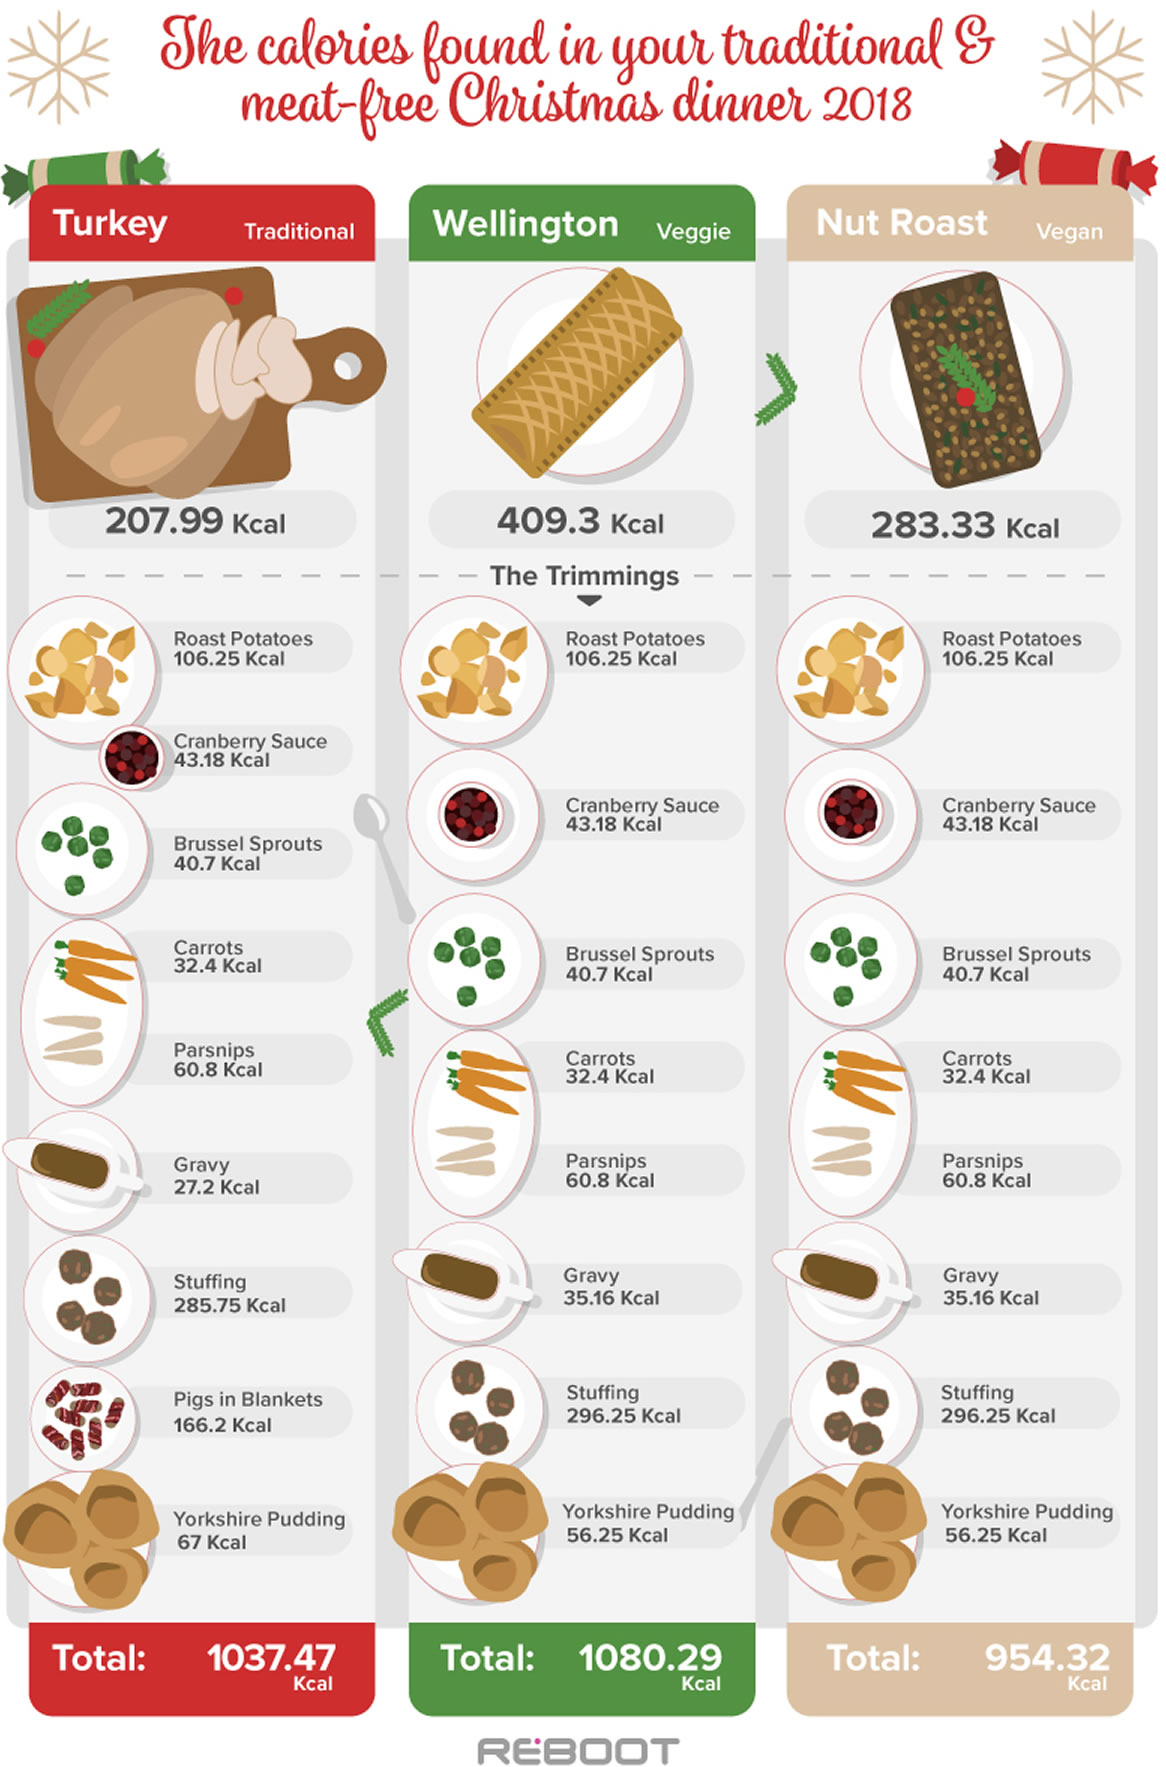 Image of Christmas dinner calories infographic